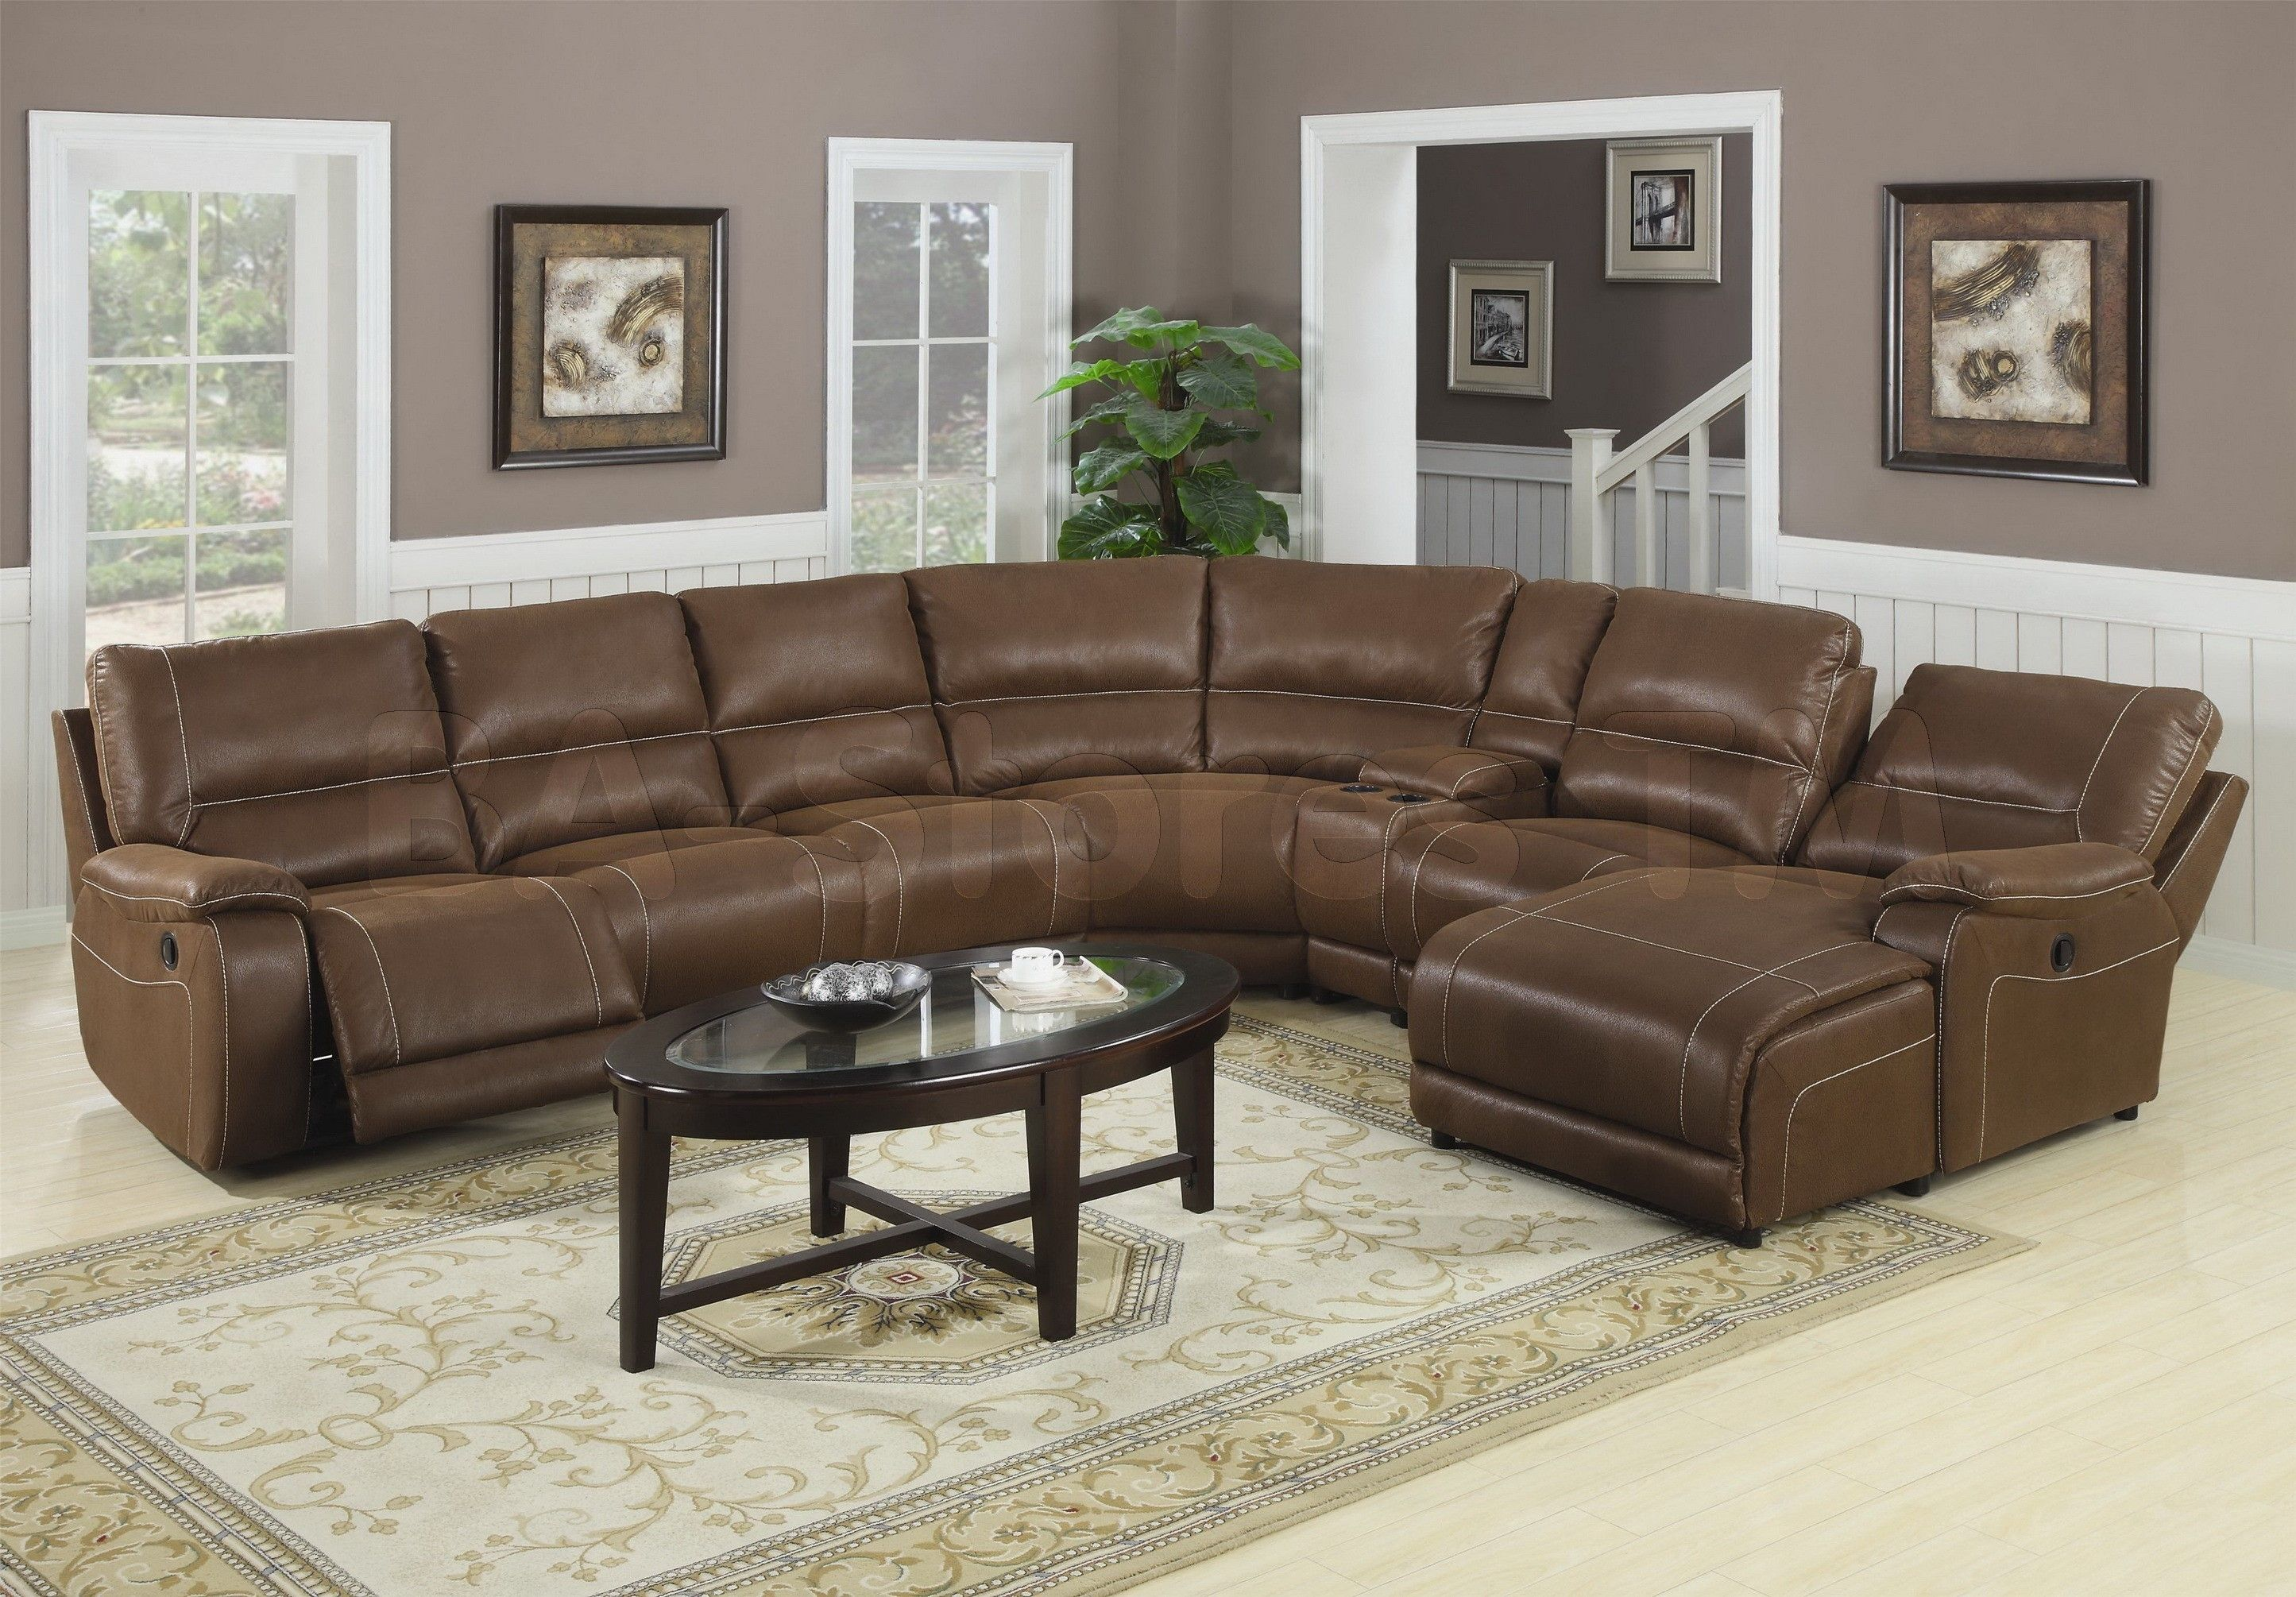 Extra Large Leather Sectional Sofas - Materials, fashion ...